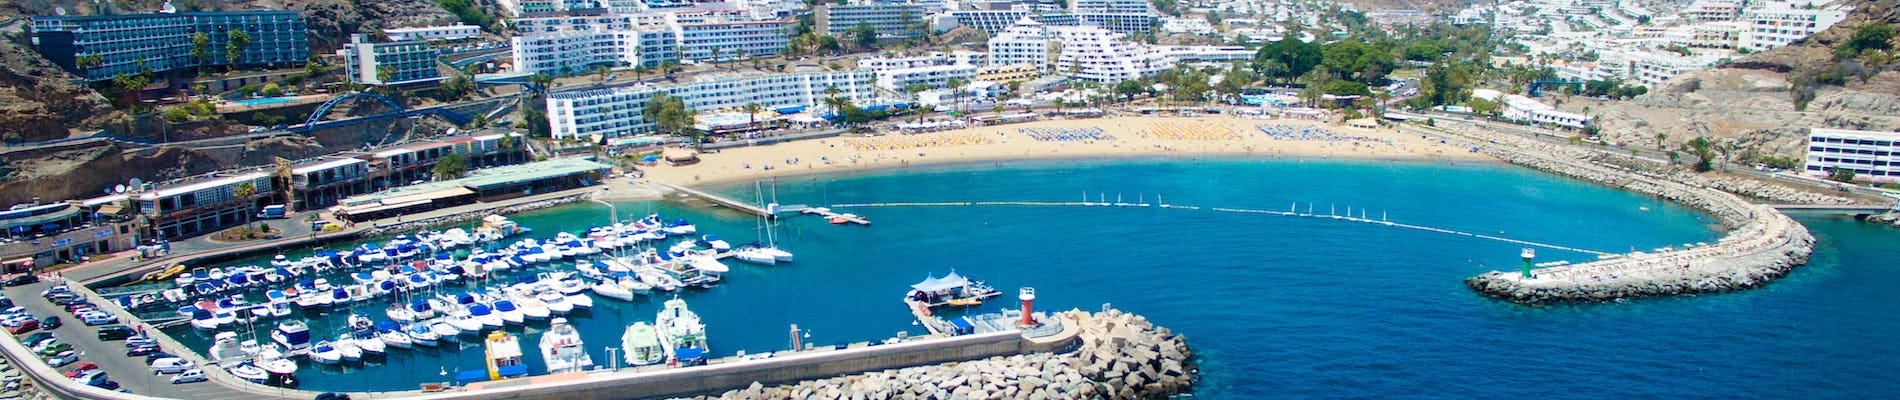 Holiday in puerto rico what do i have to know - Taxi puerto rico gran canaria ...